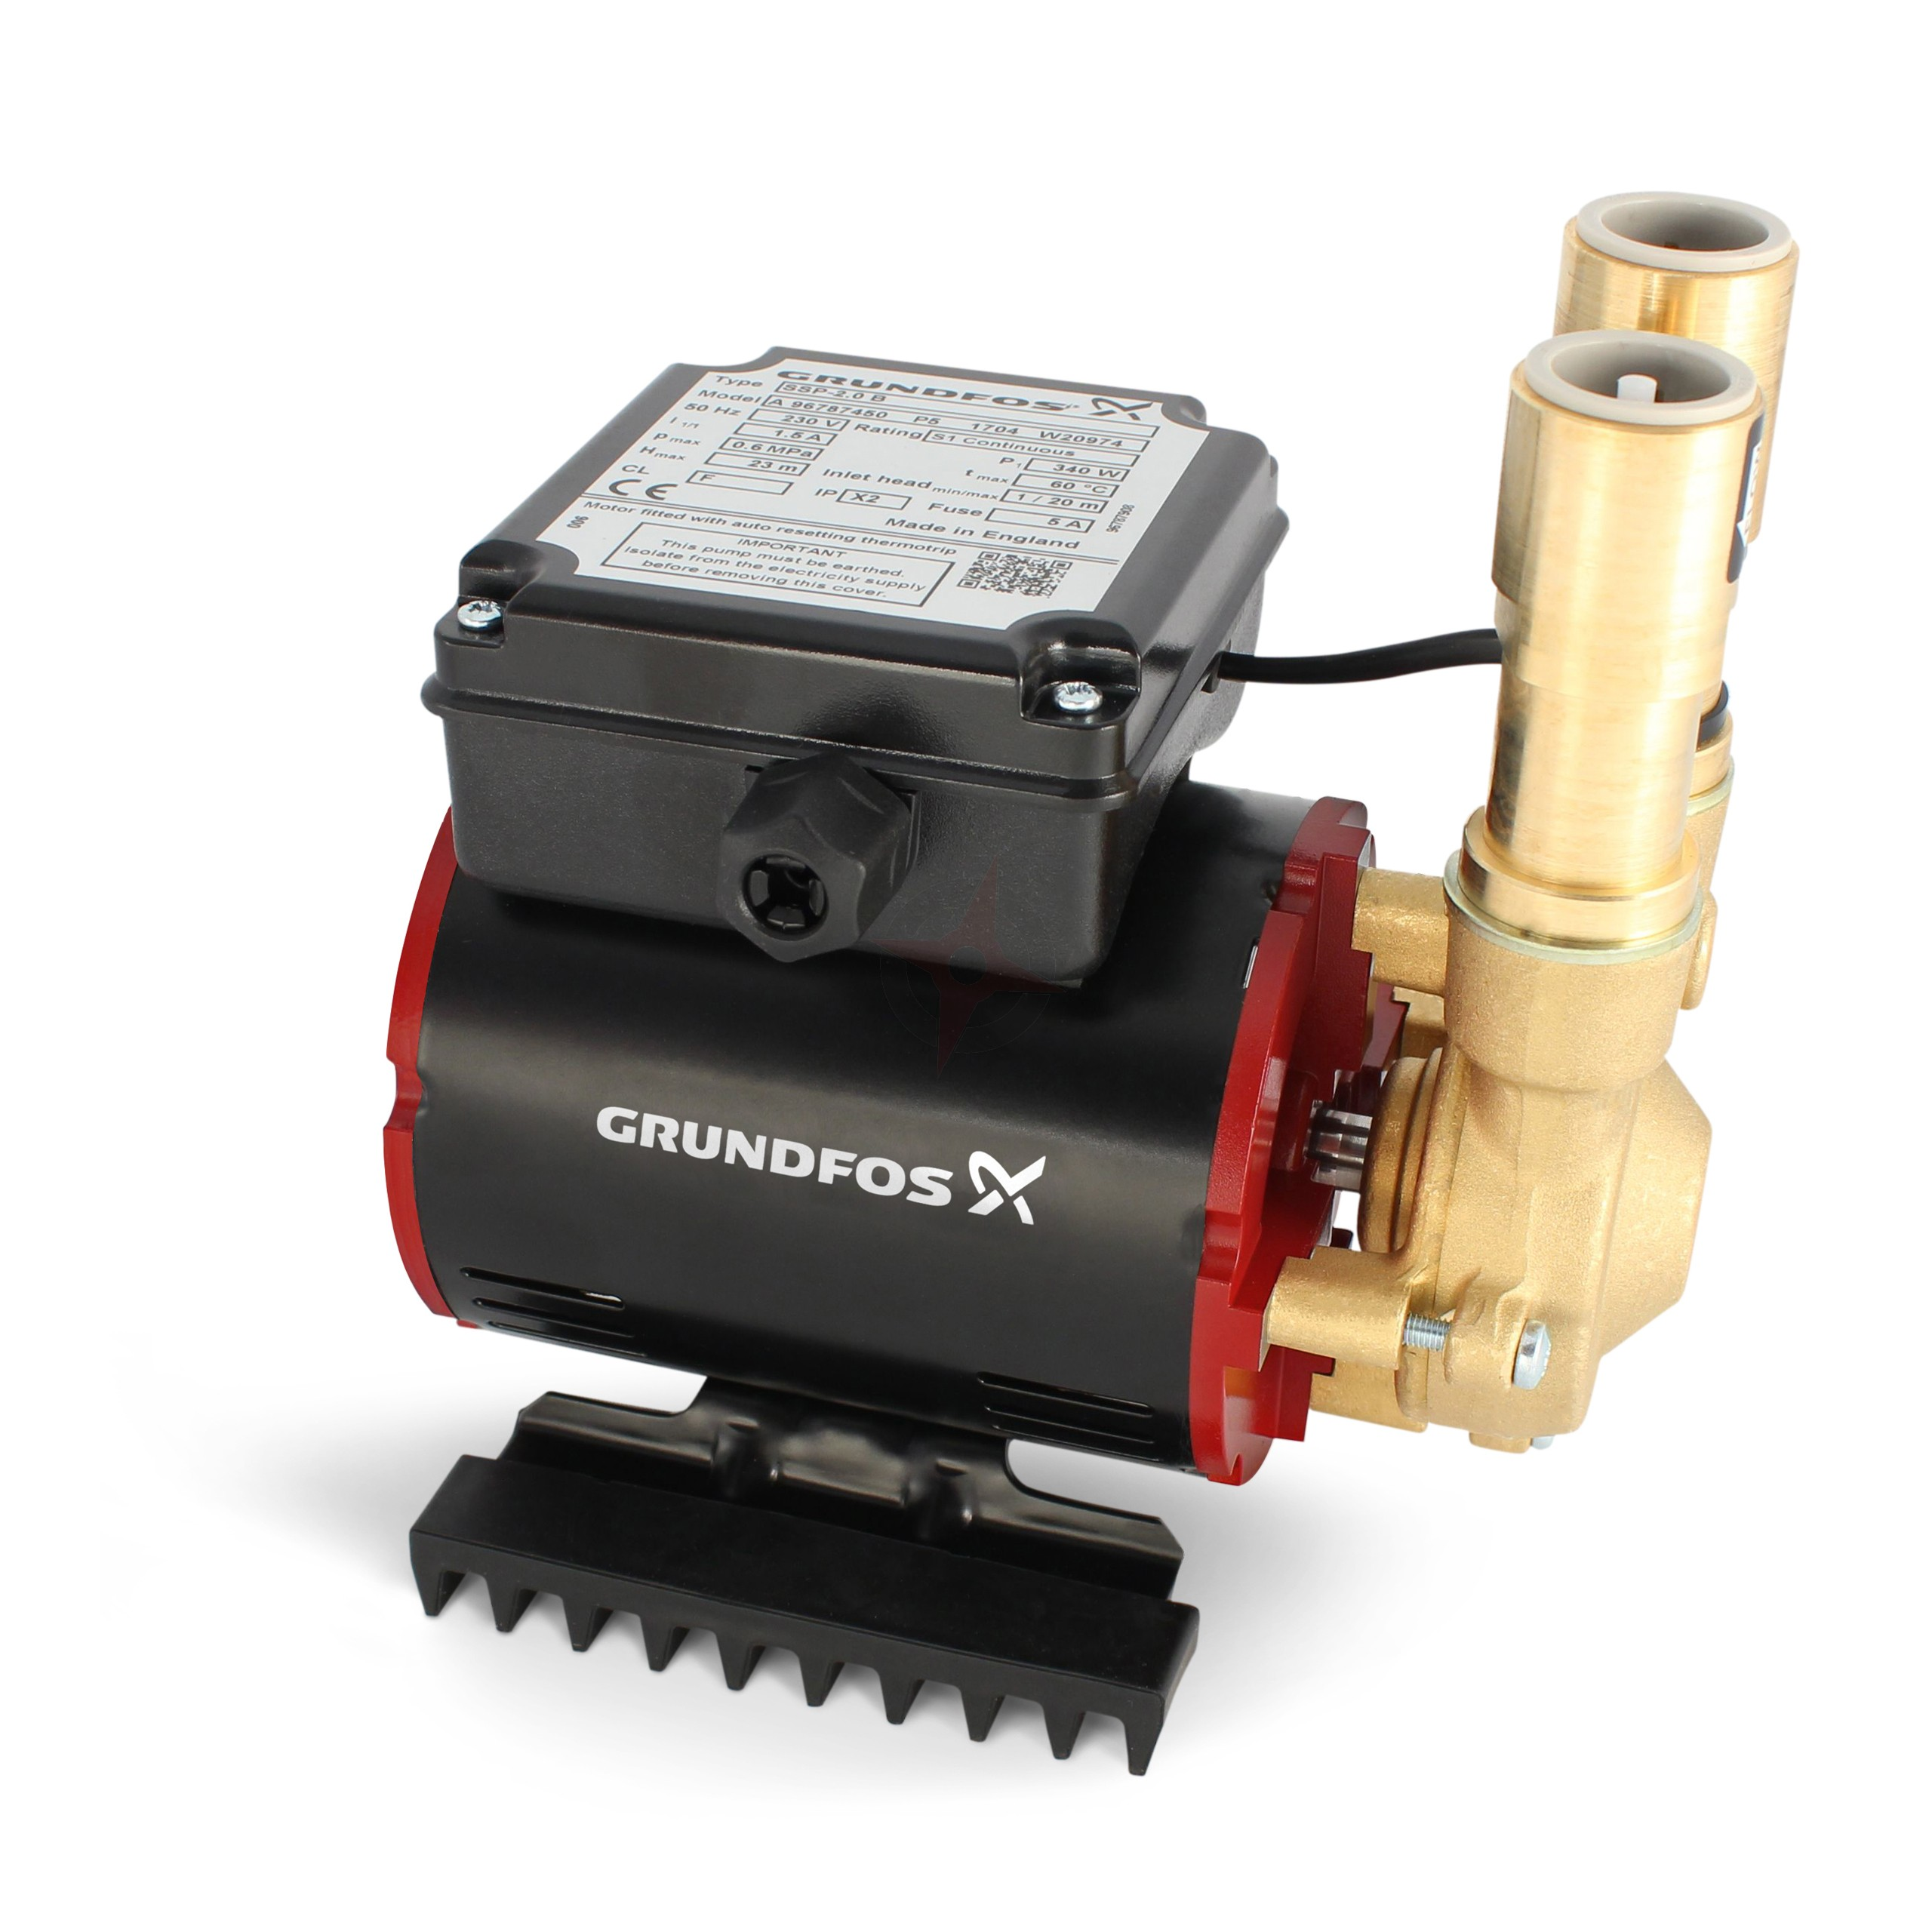 Grundfos Amazon SSP-2.0B Brass Positive 2.0 Bar Single Impeller Shower Pump